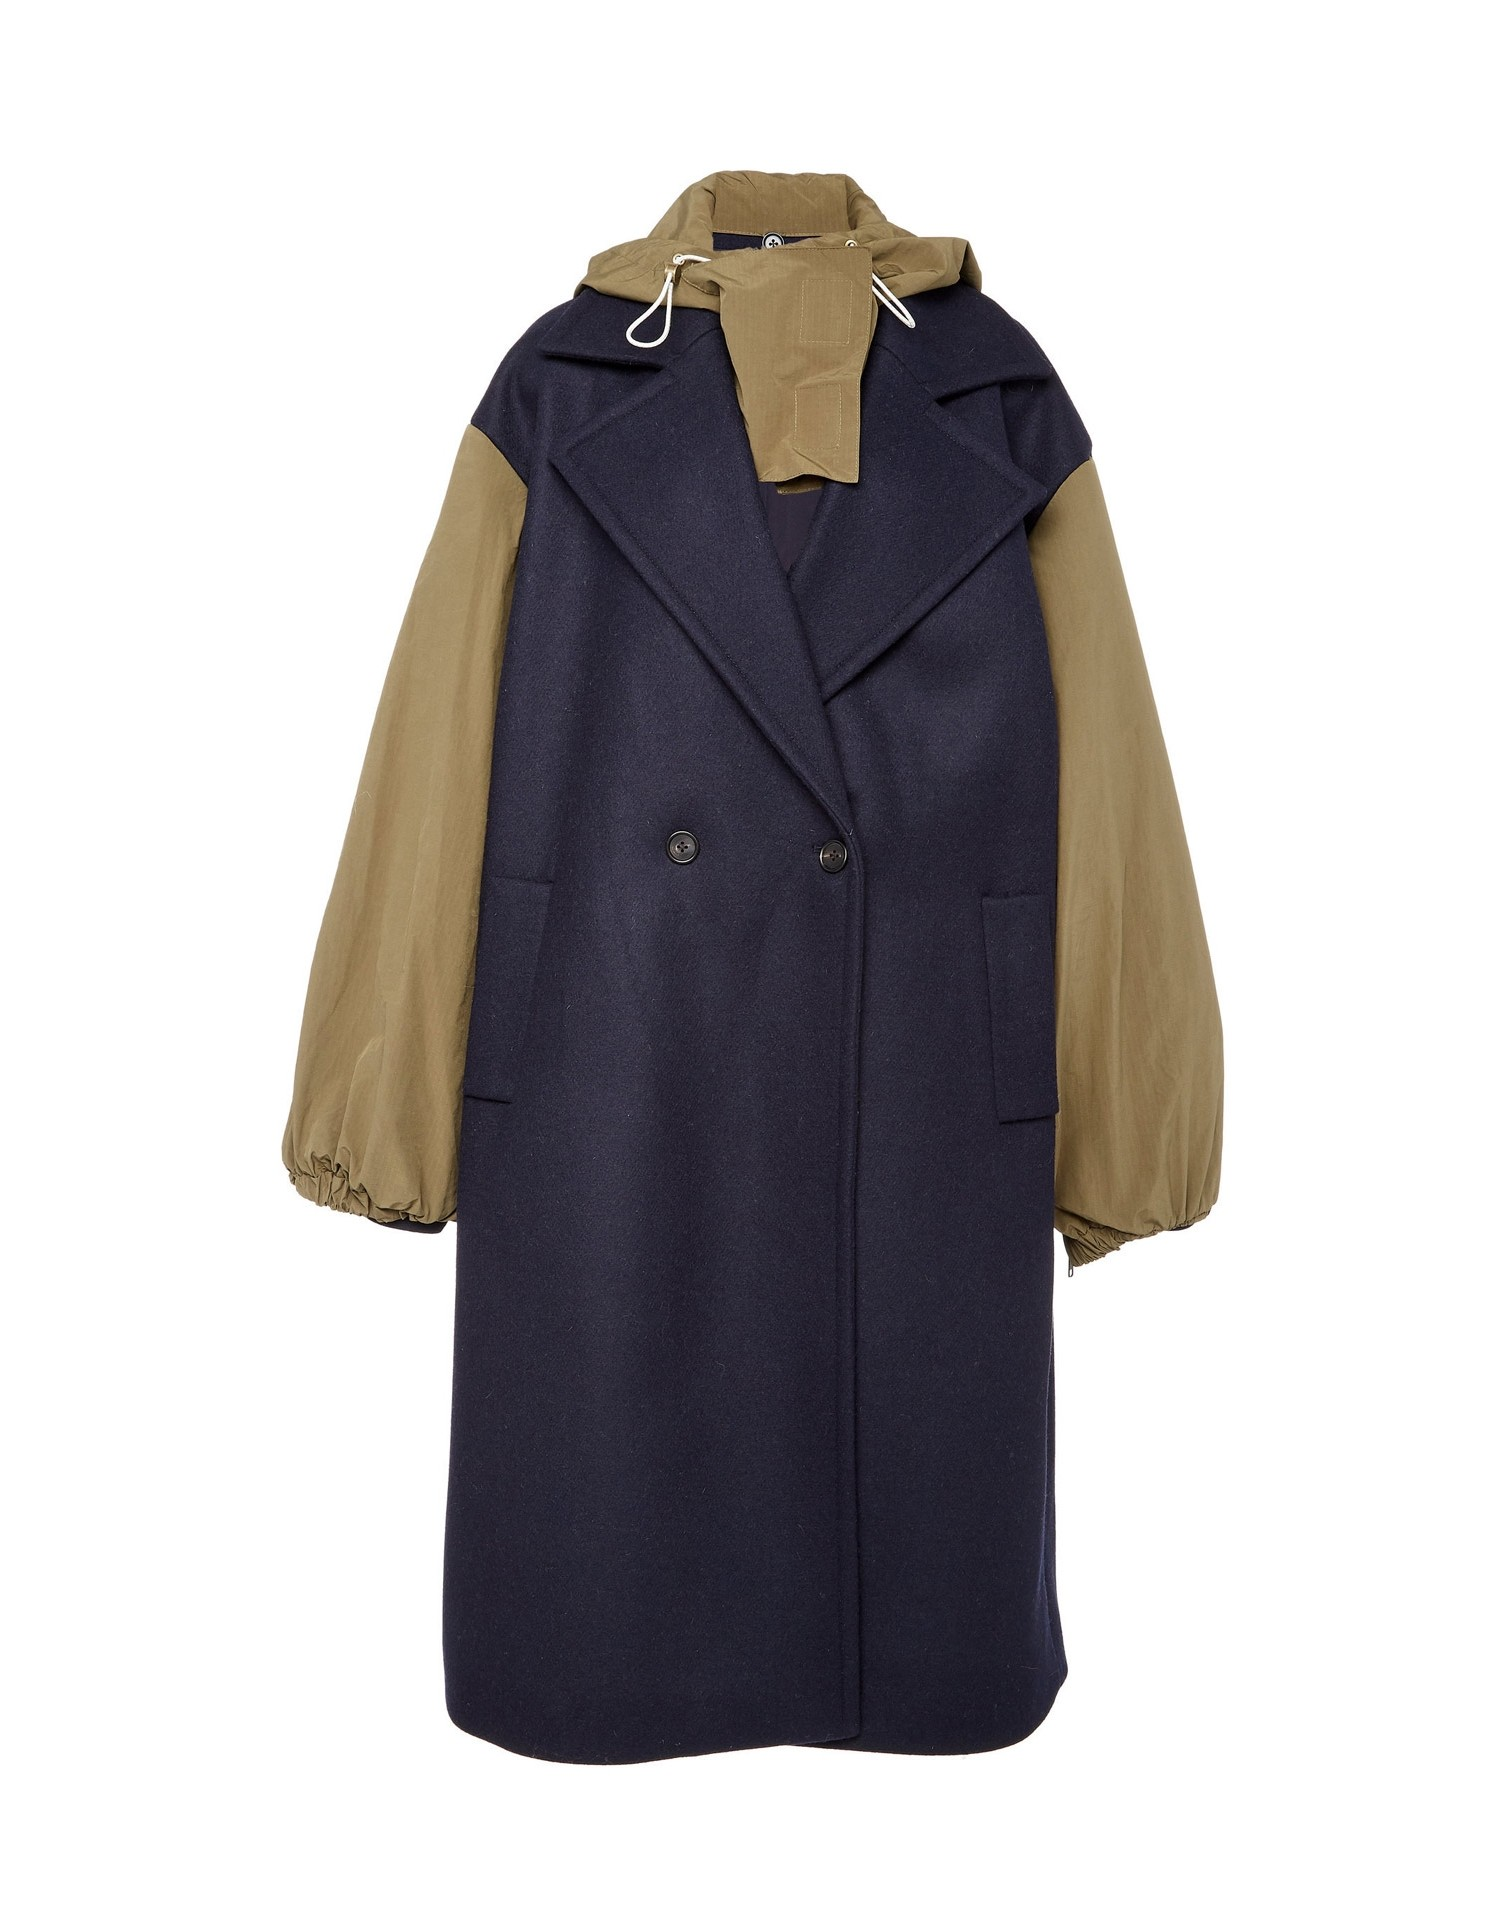 MONSE Wool & Nylon Double Coat on Model Front View